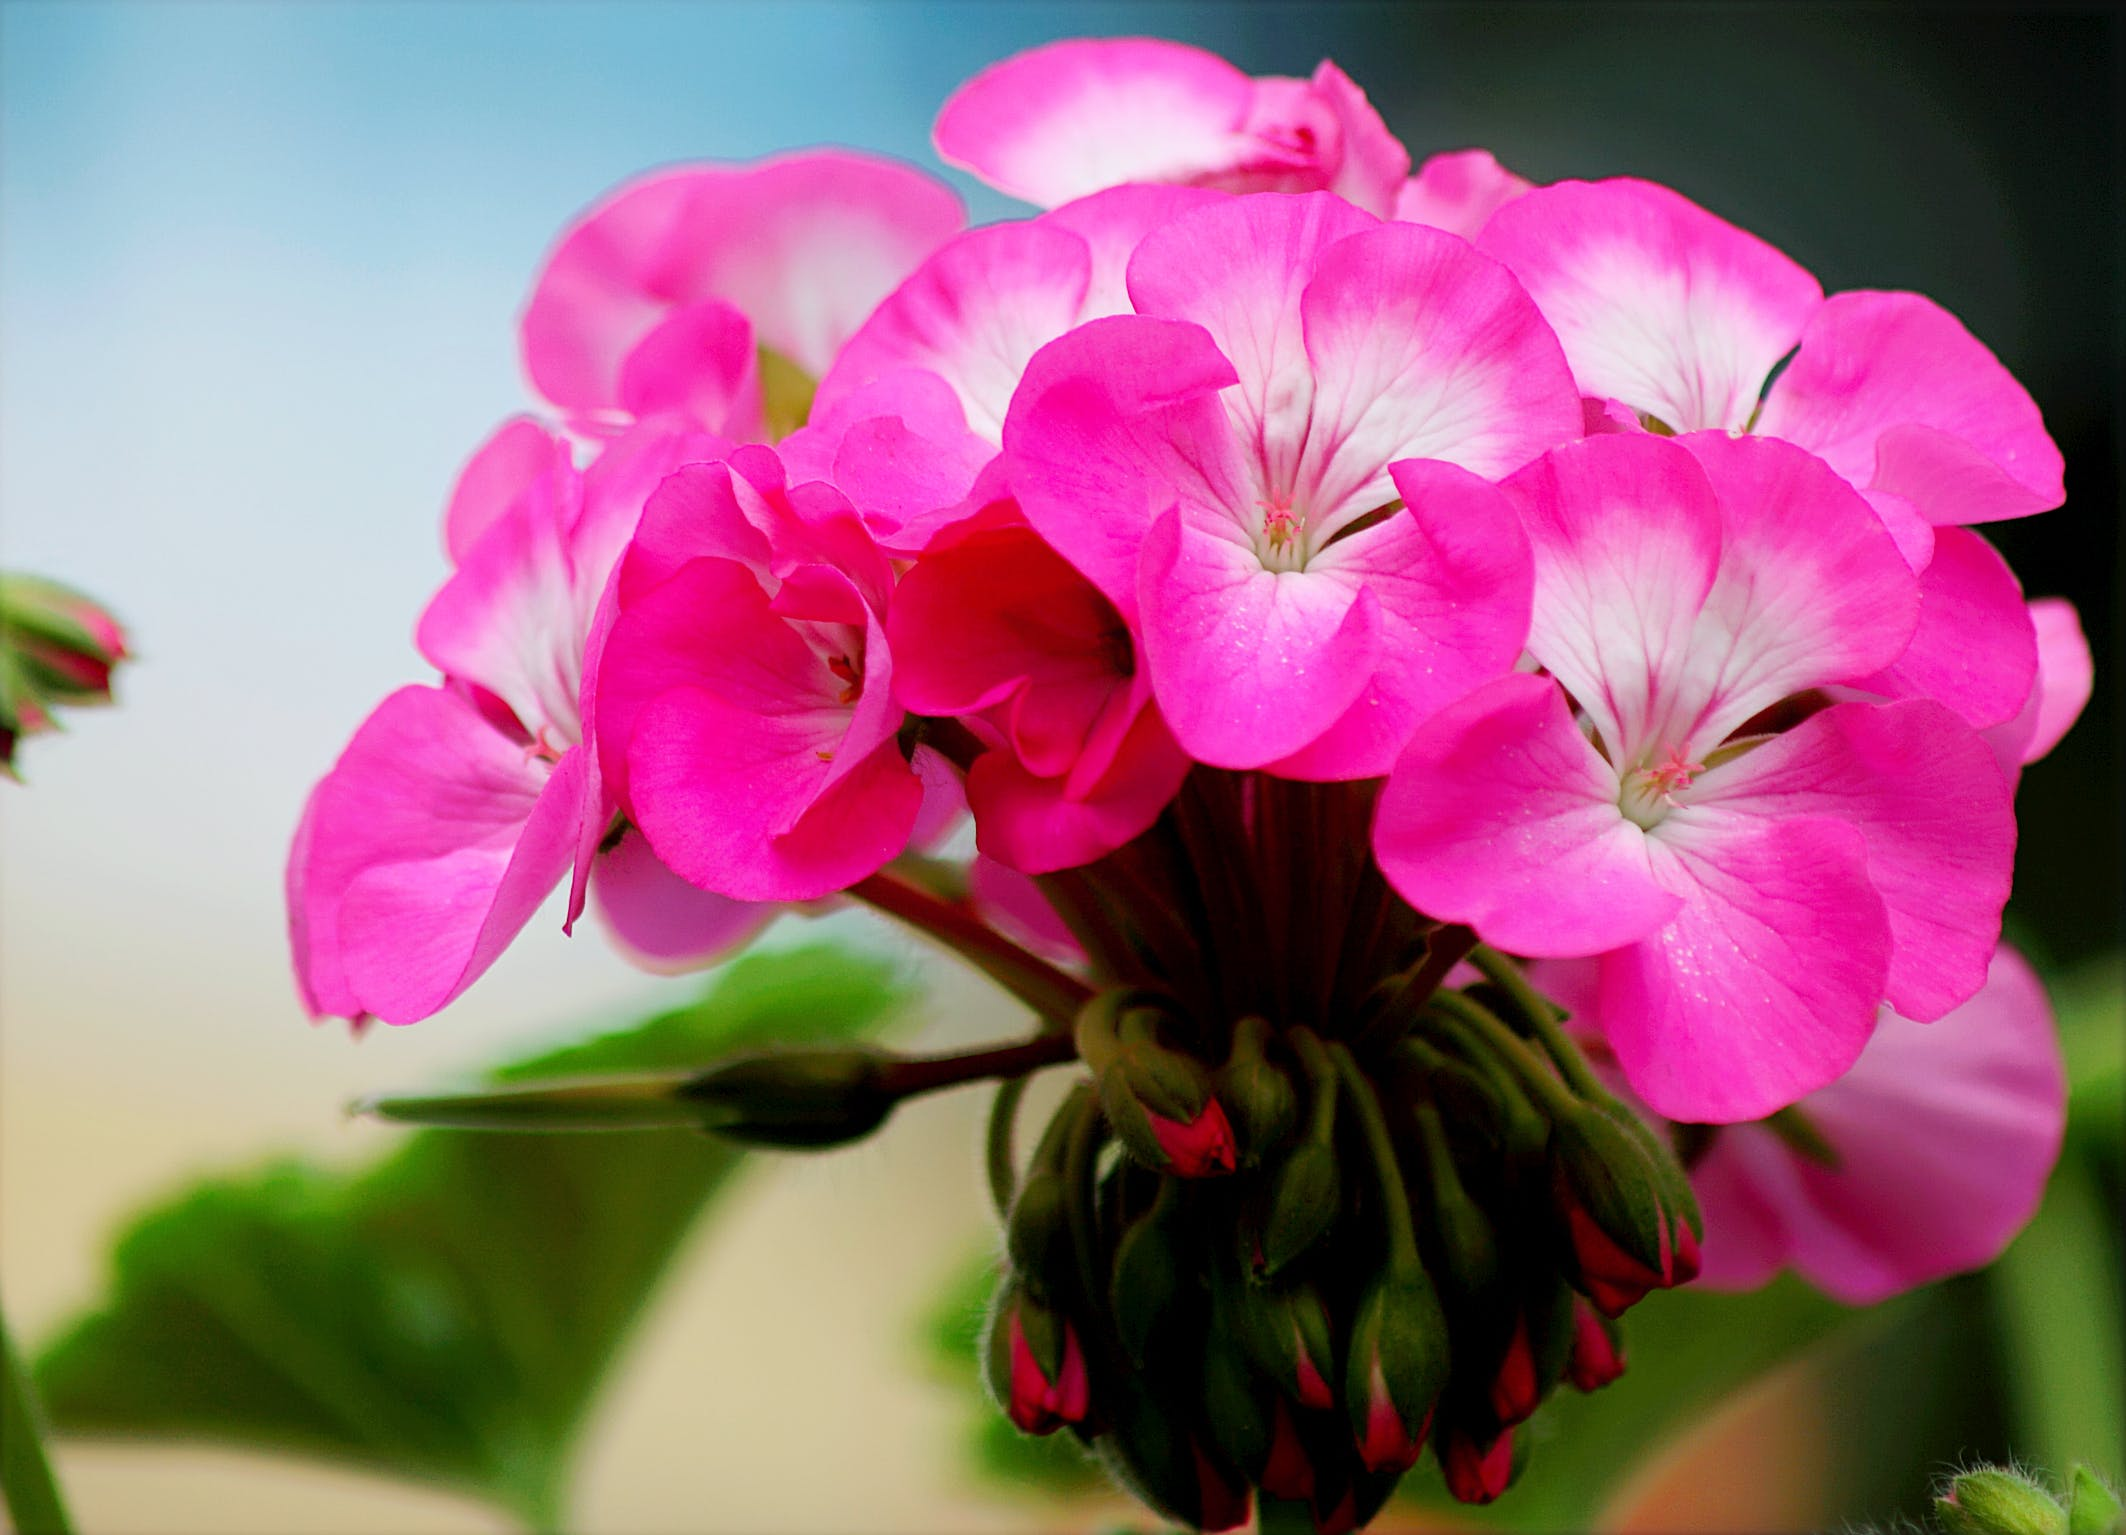 Close-up Photo of Blooming Pink Petaled Flowers